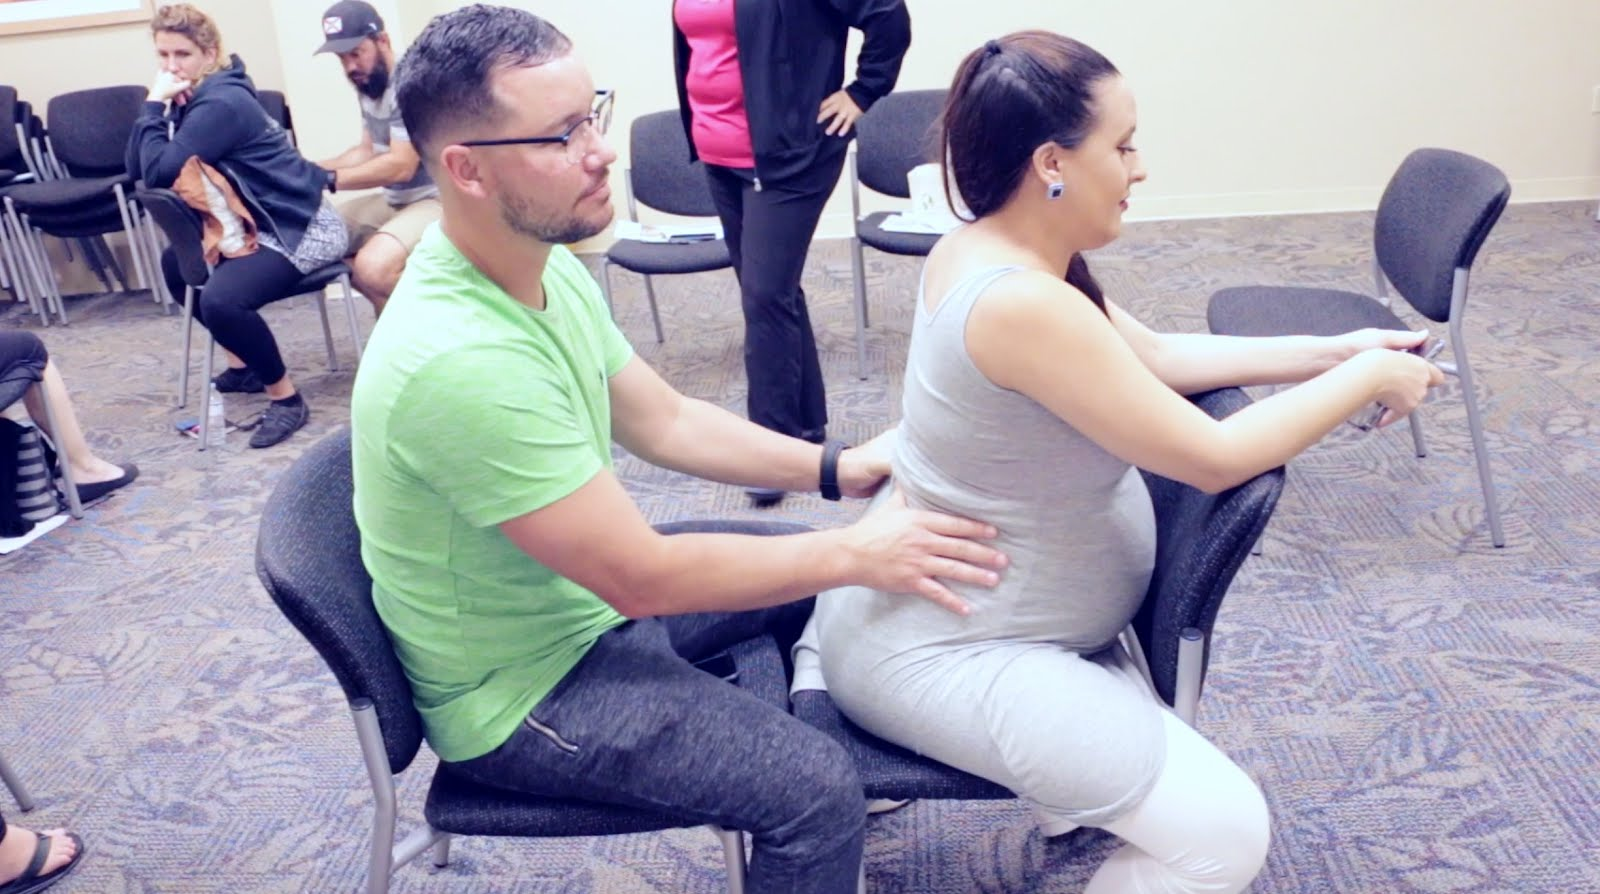 Prenatal-Clases-Comfort-Measures-for-Labor-and-Birth-The-Gift-of-Motherhood-Florida-Hospital-Vivi-Brizuela